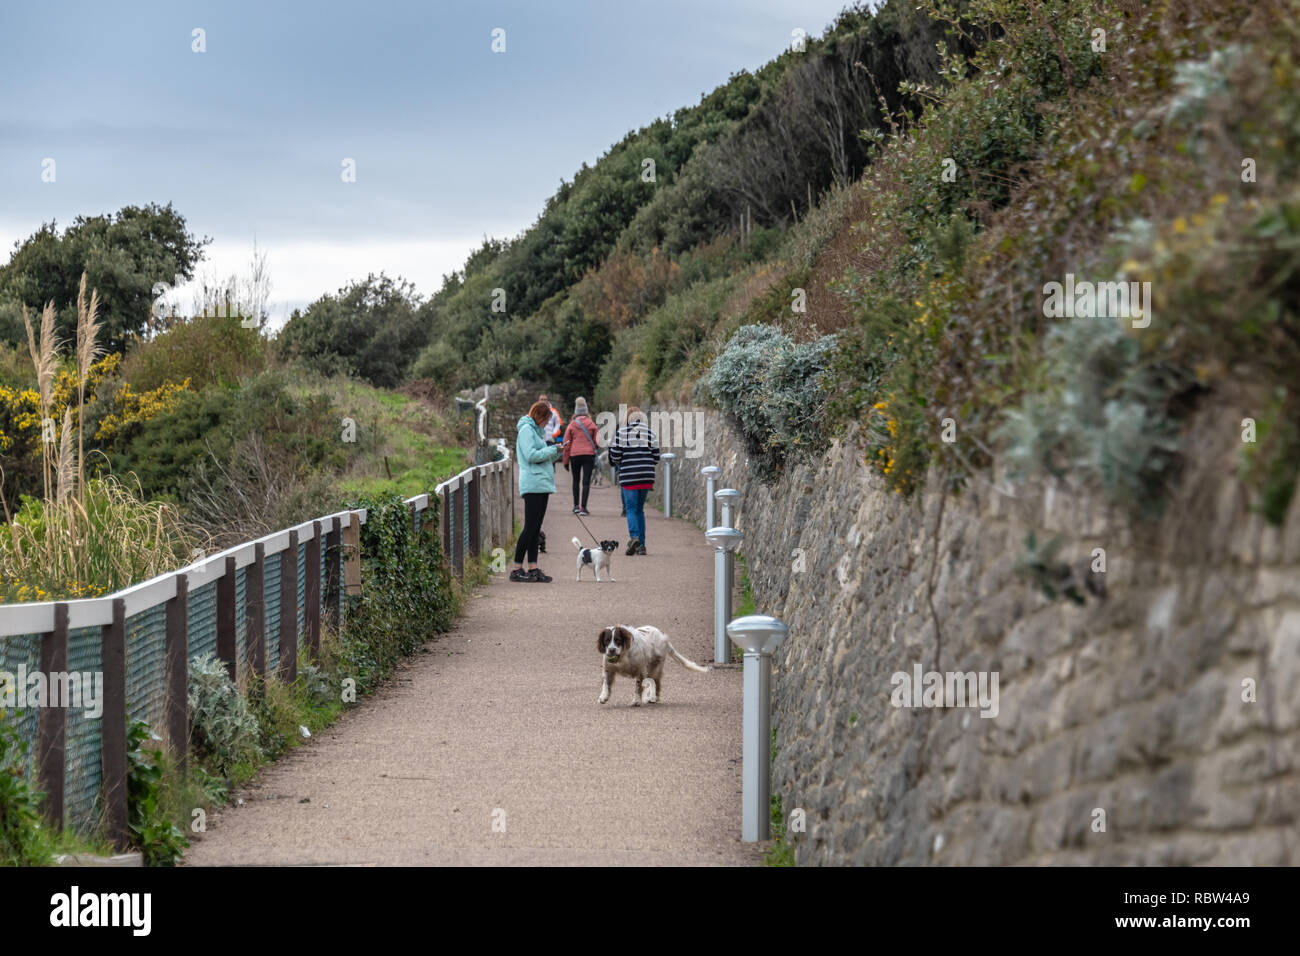 Bournemouth, Dorset, UK. 12th January 2019. People walking to the beach down a steep slope in Bournemouth. Credit: Thomas Faull/Alamy Live News Stock Photo